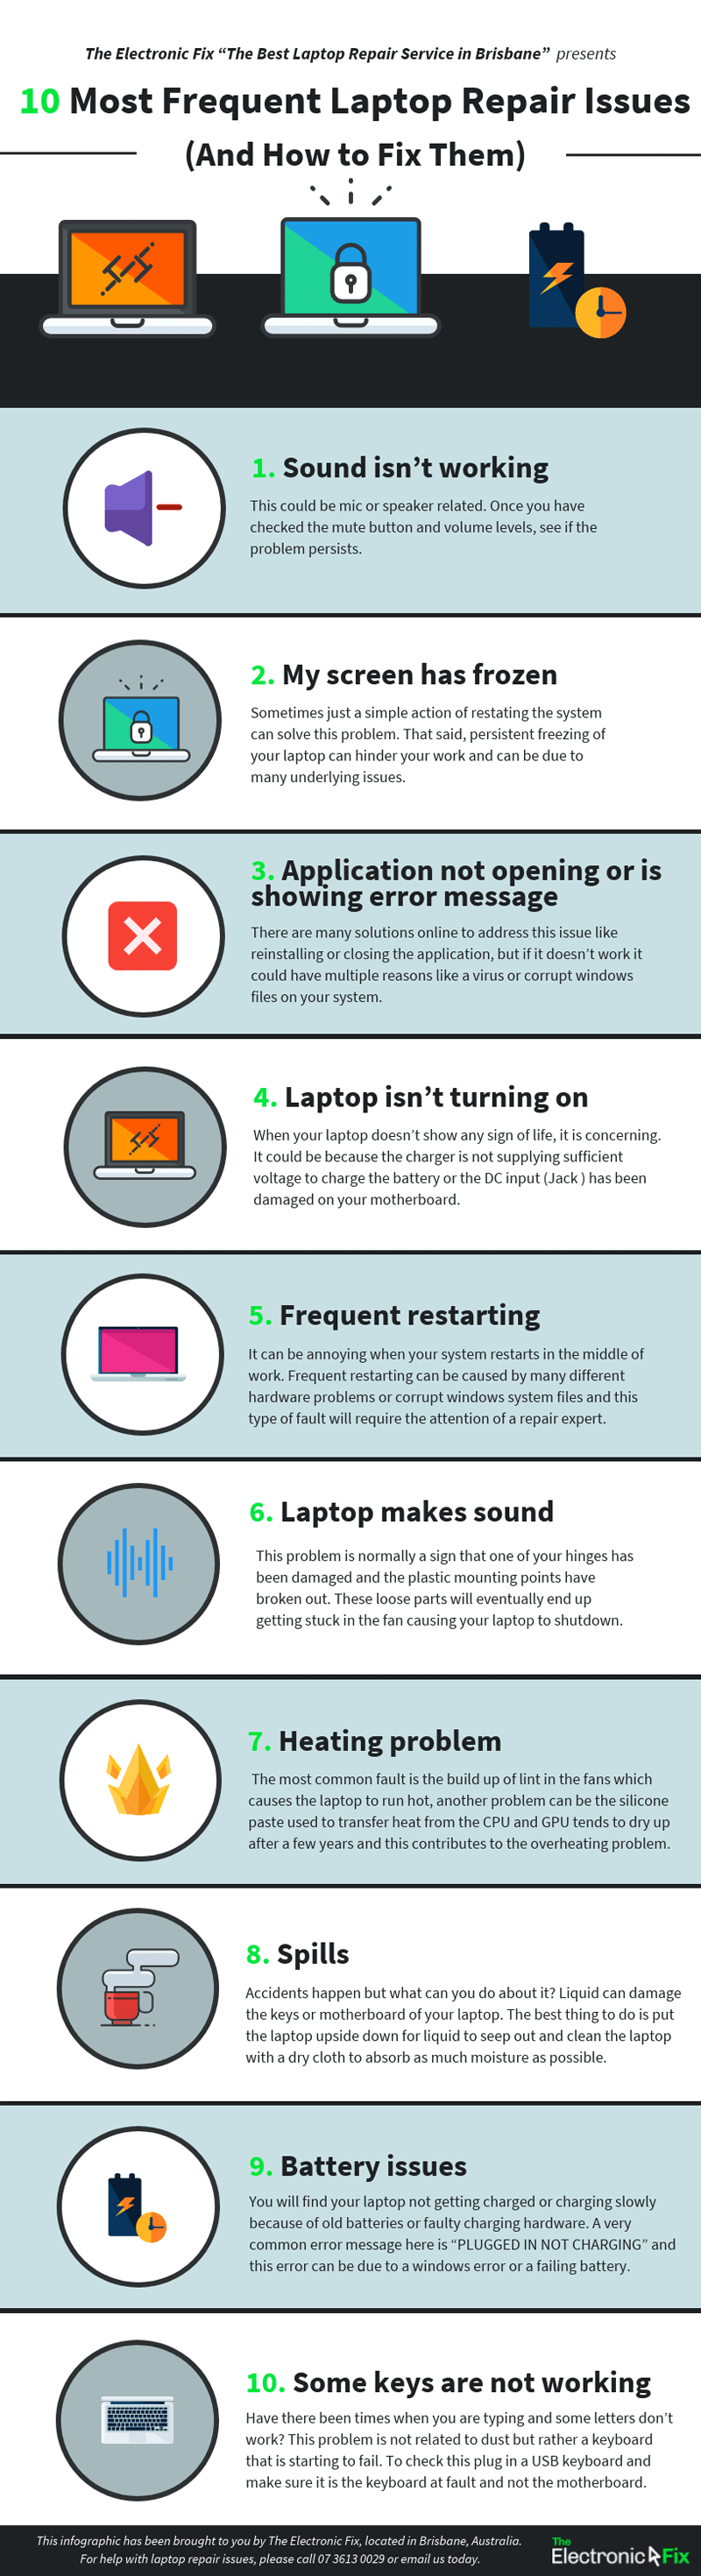 10 Most Frequent Laptop Repair Issues